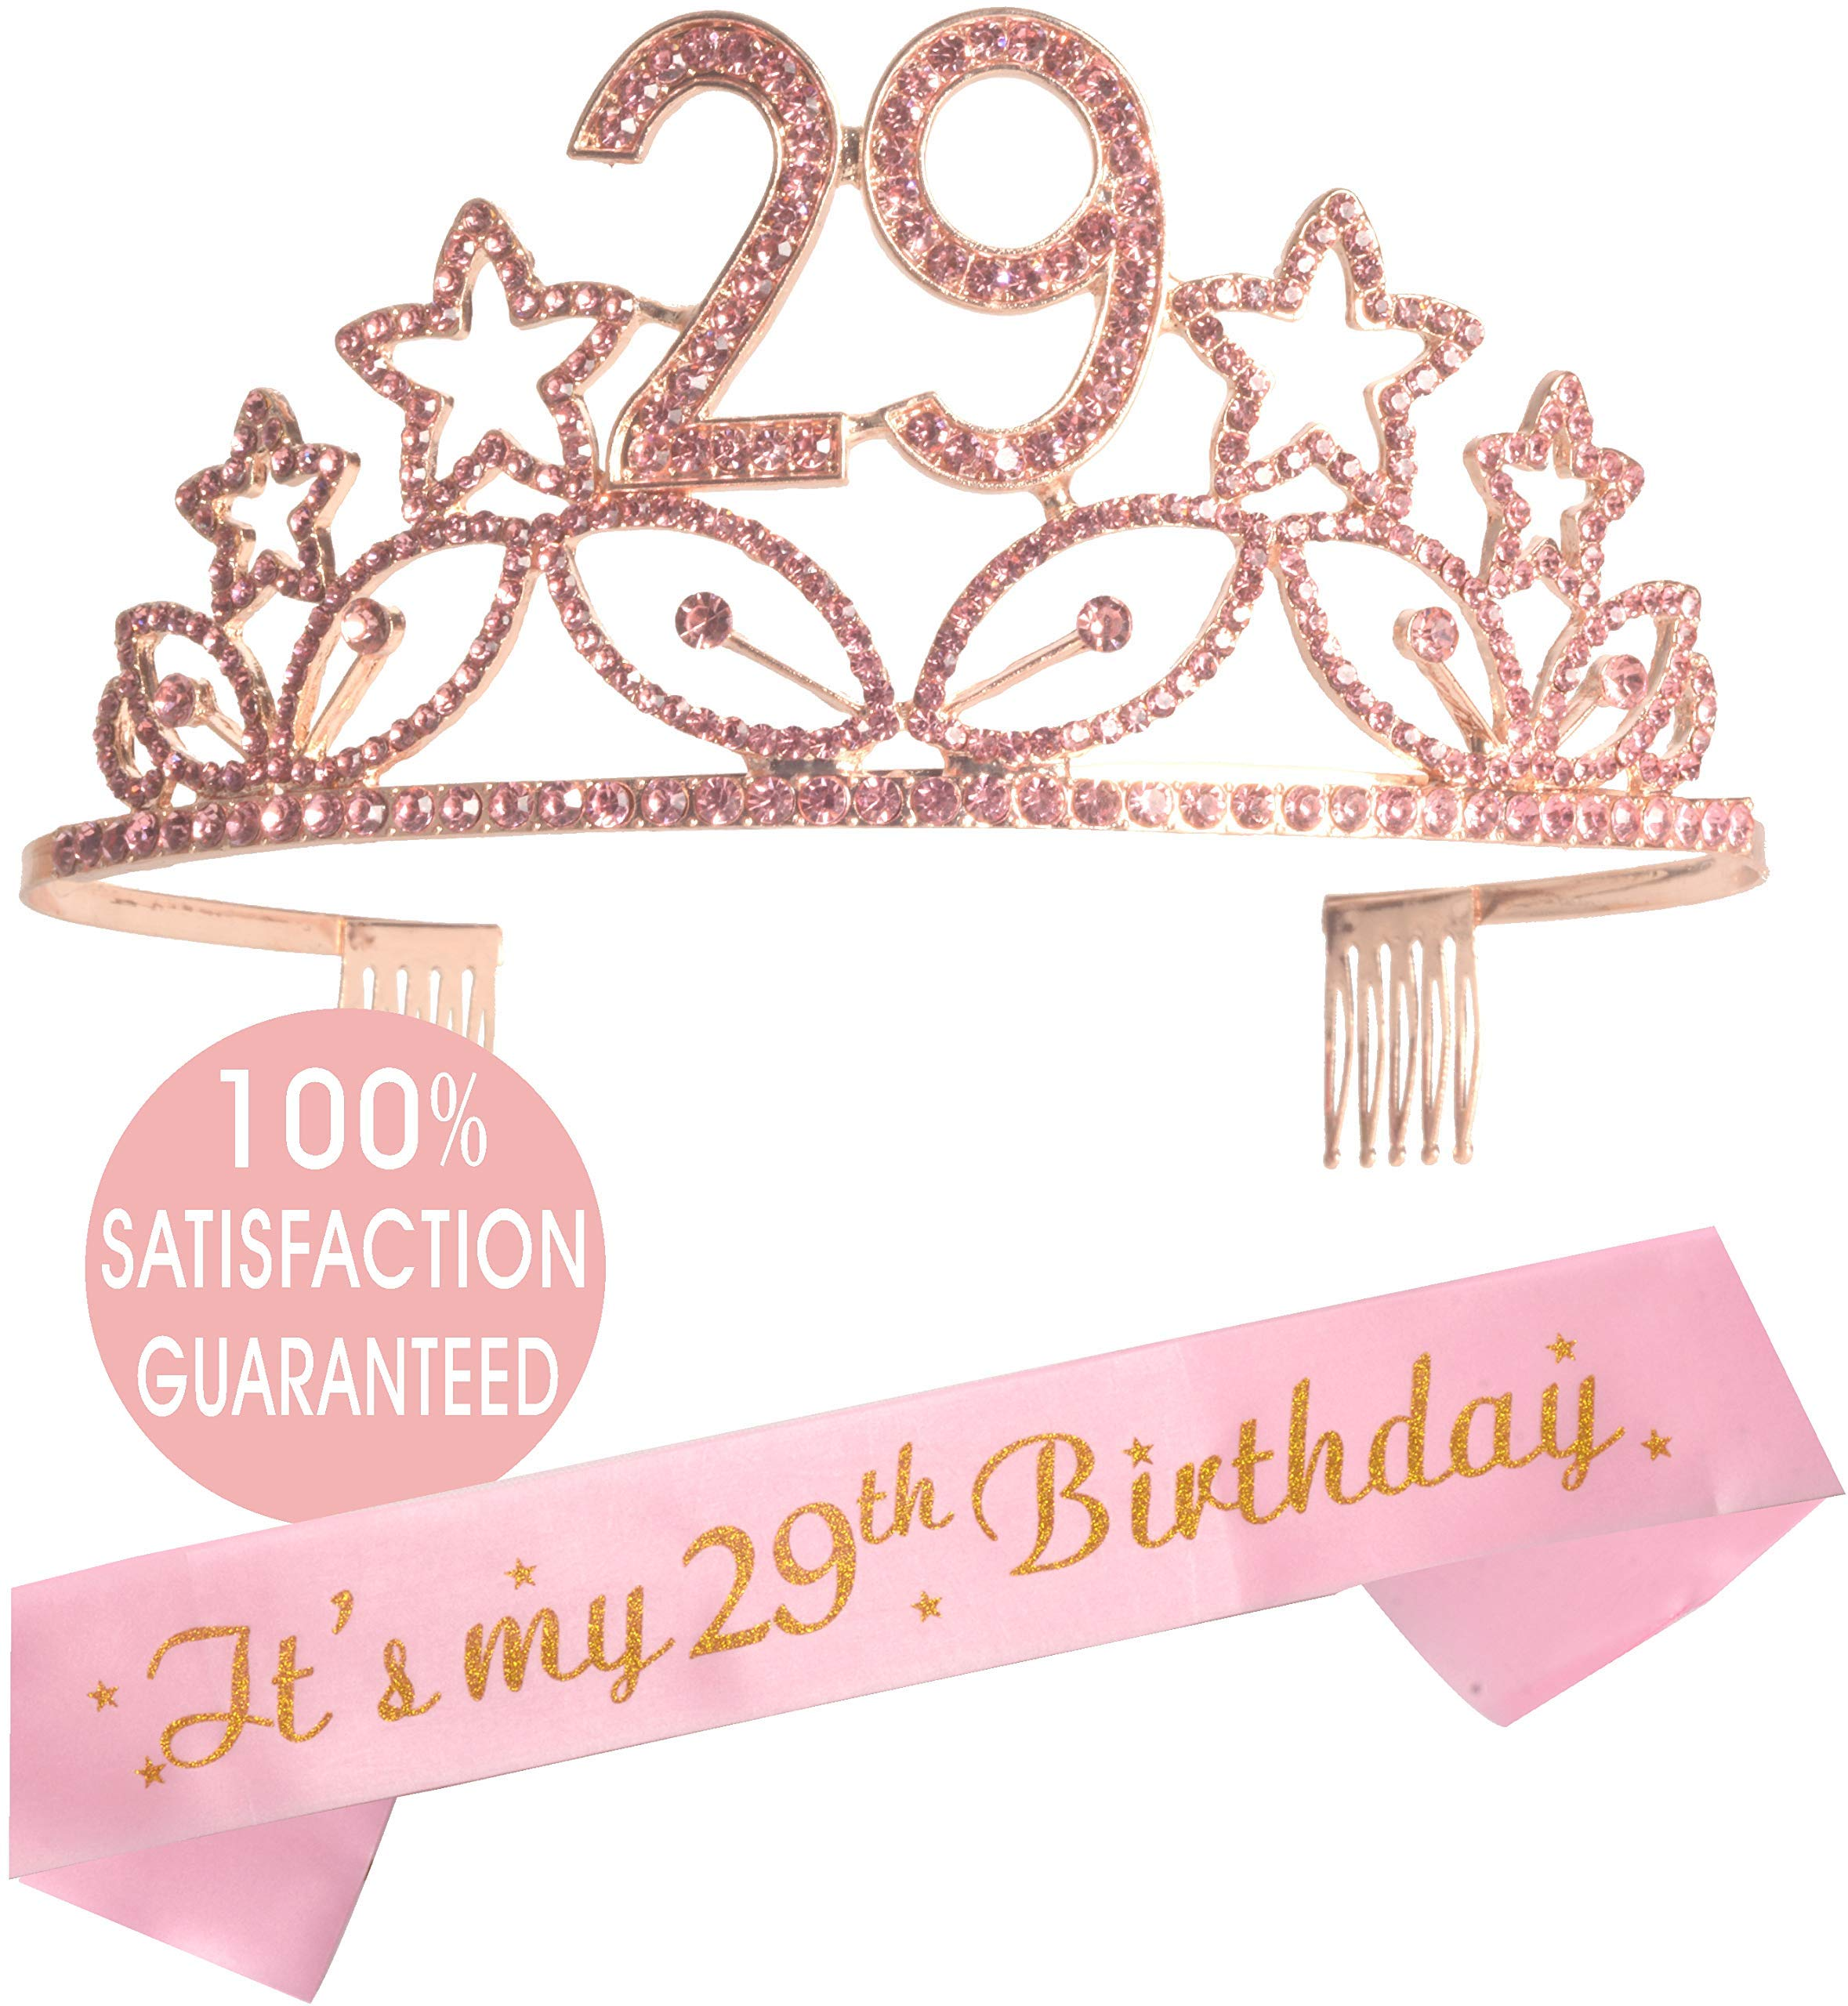 29th Birthday Tiara and Sash, Happy 29th Birthday Party Supplies, It's my 29th birthday Black Glitter Satin Sash and Crystal Tiara Birthday Crown for 29th Birthday Party Supplies and Decorations (Tiar by MEANT2TOBE